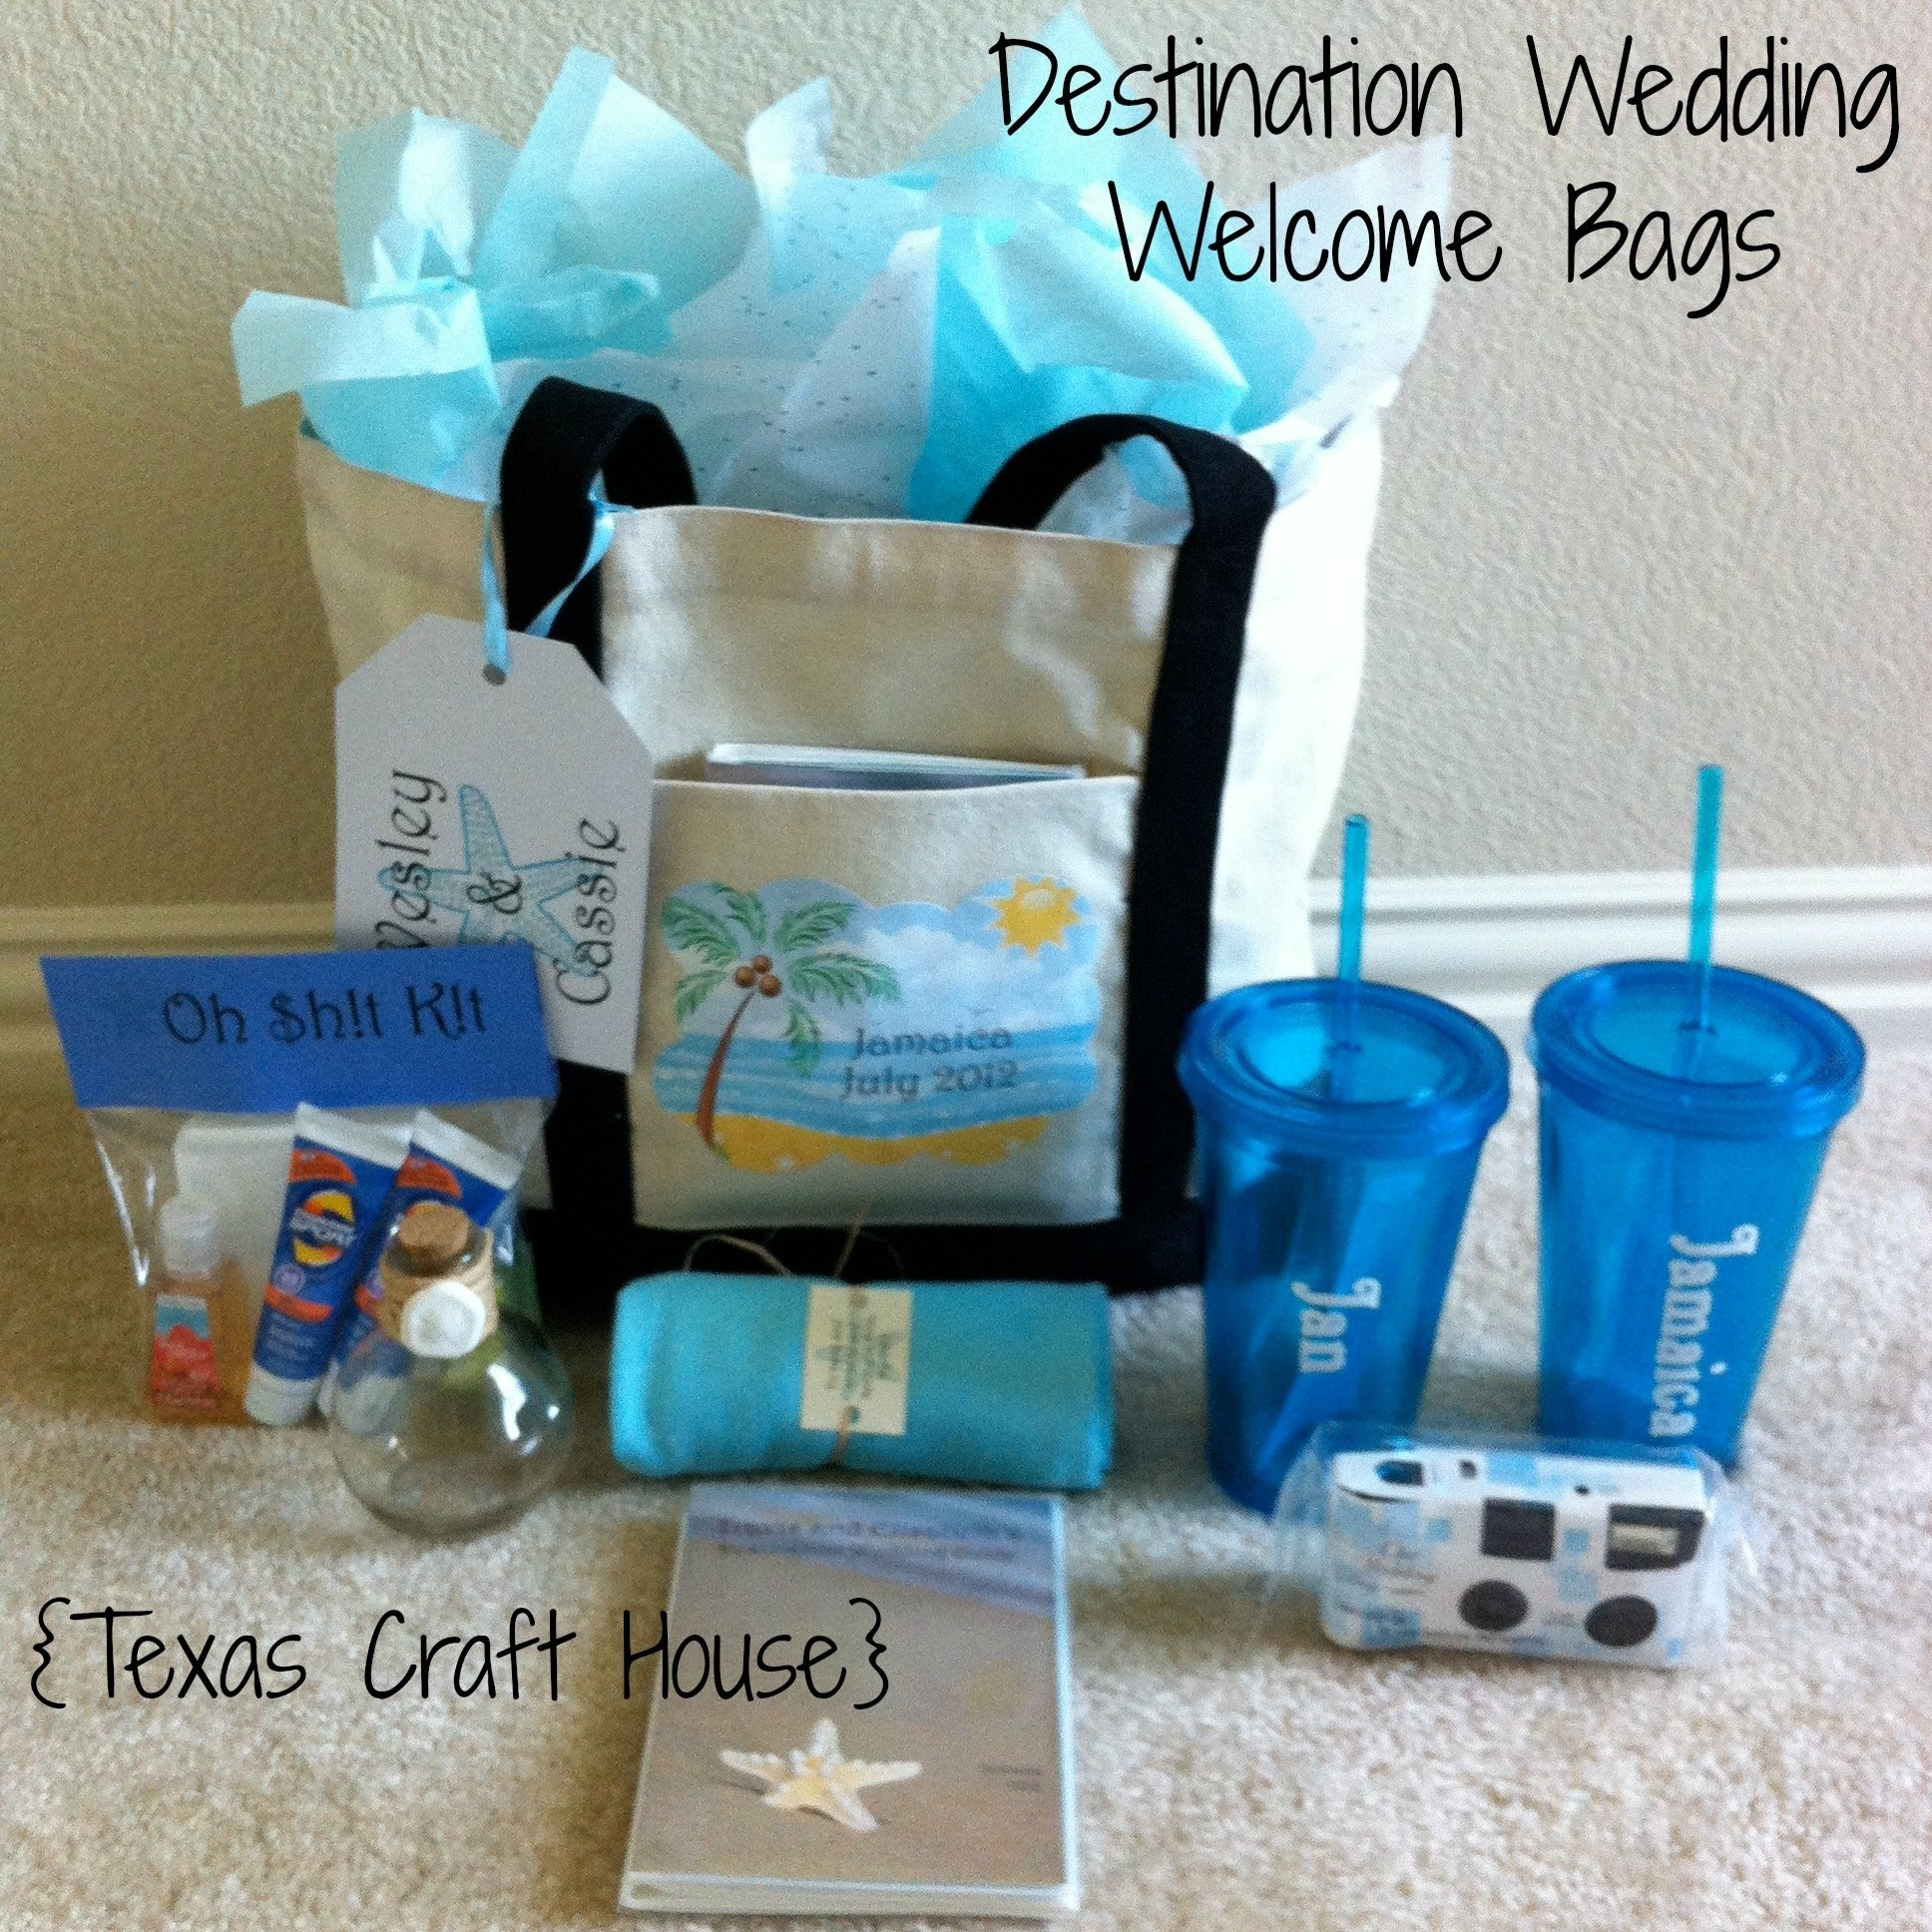 10 Fantastic Ideas For Wedding Welcome Bags destination wedding welcome bags diy texas craft house 2021